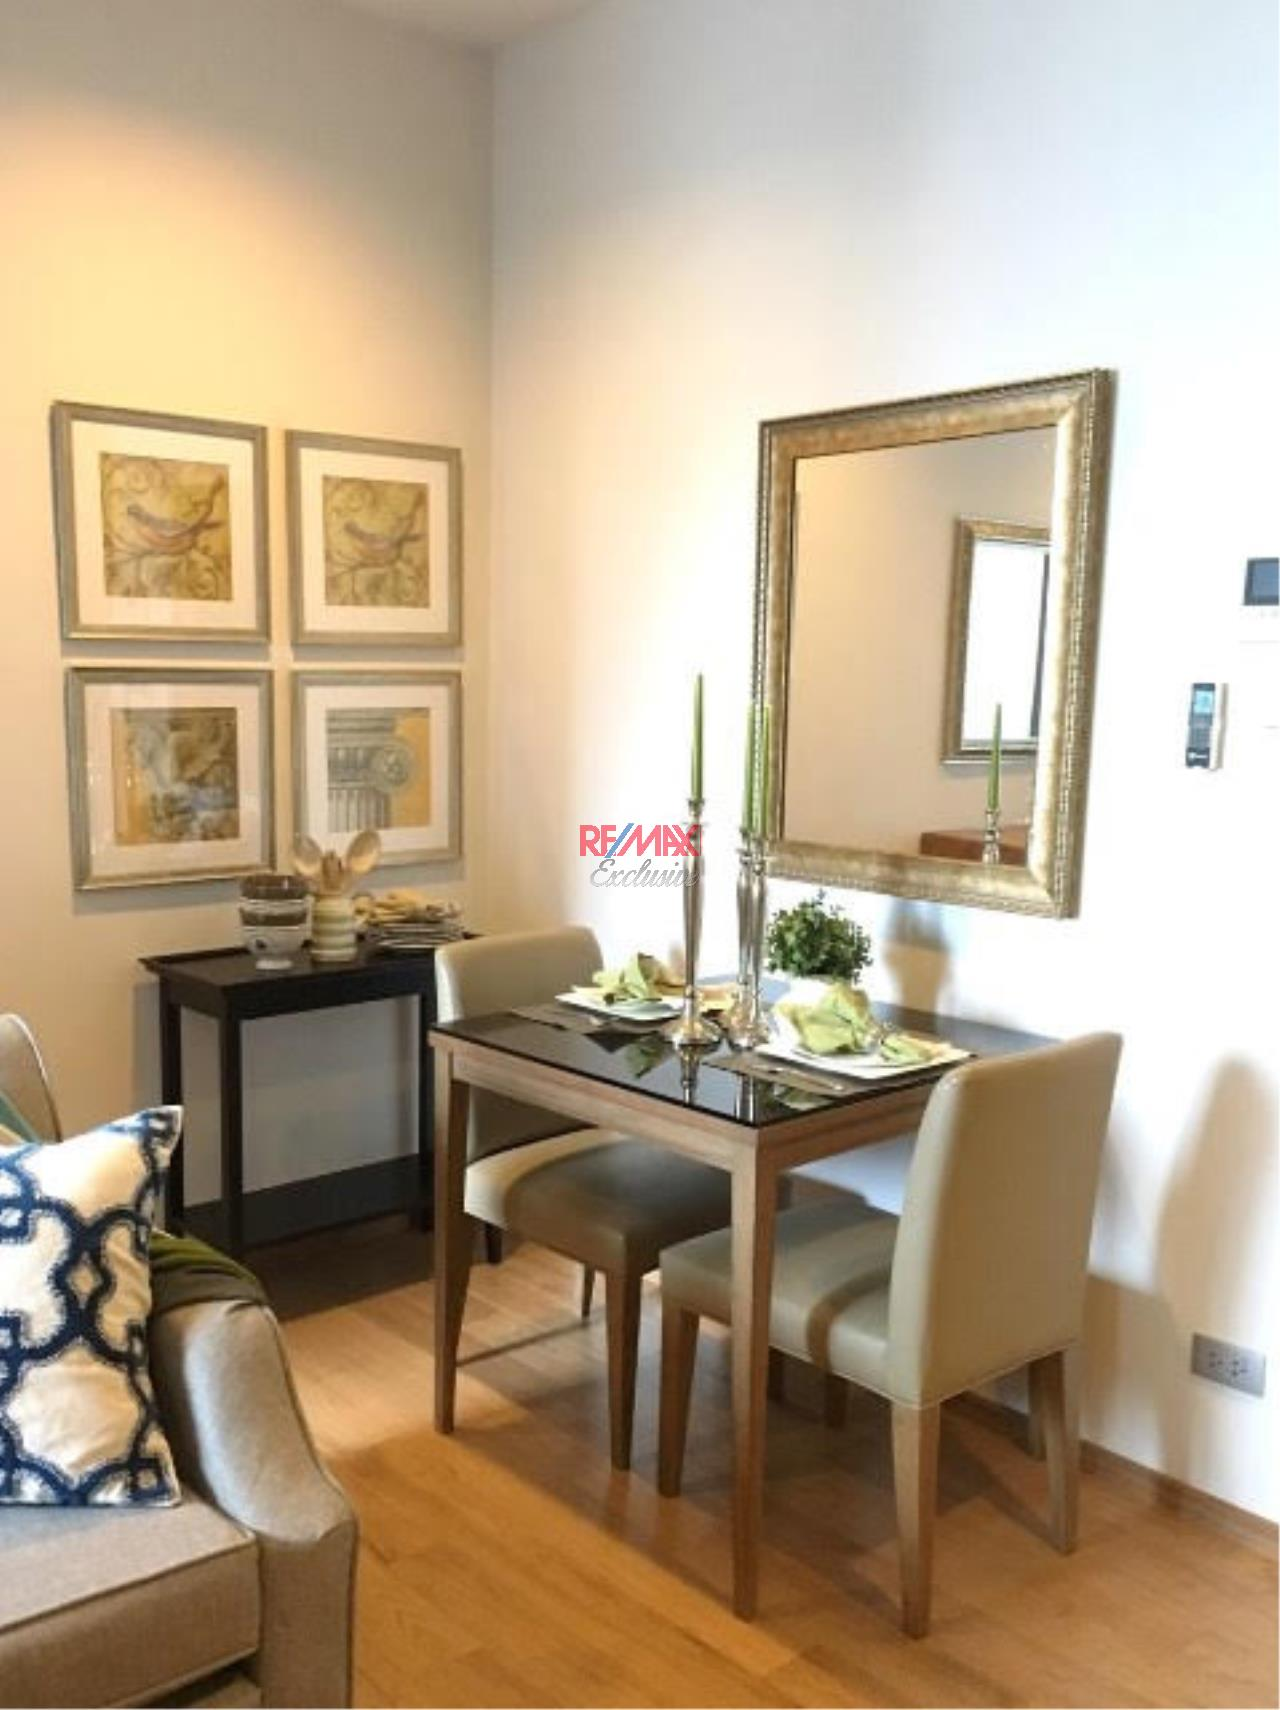 RE/MAX Exclusive Agency's Condominium in town For Rent 40,000 THB  3